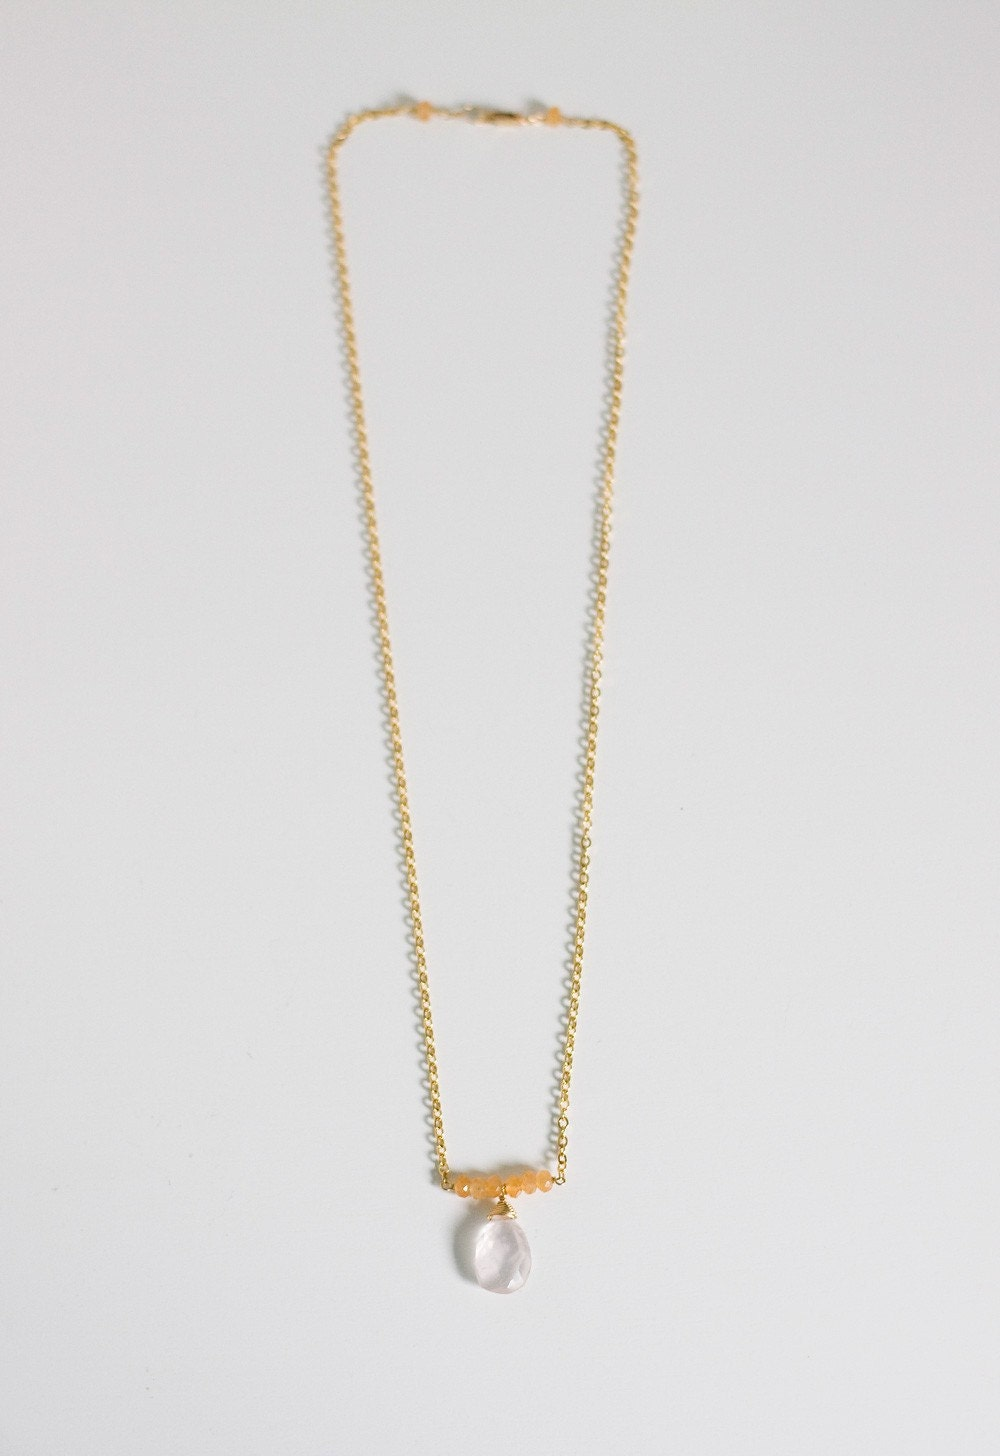 elisa necklace         .        14kt gold filled chain       .